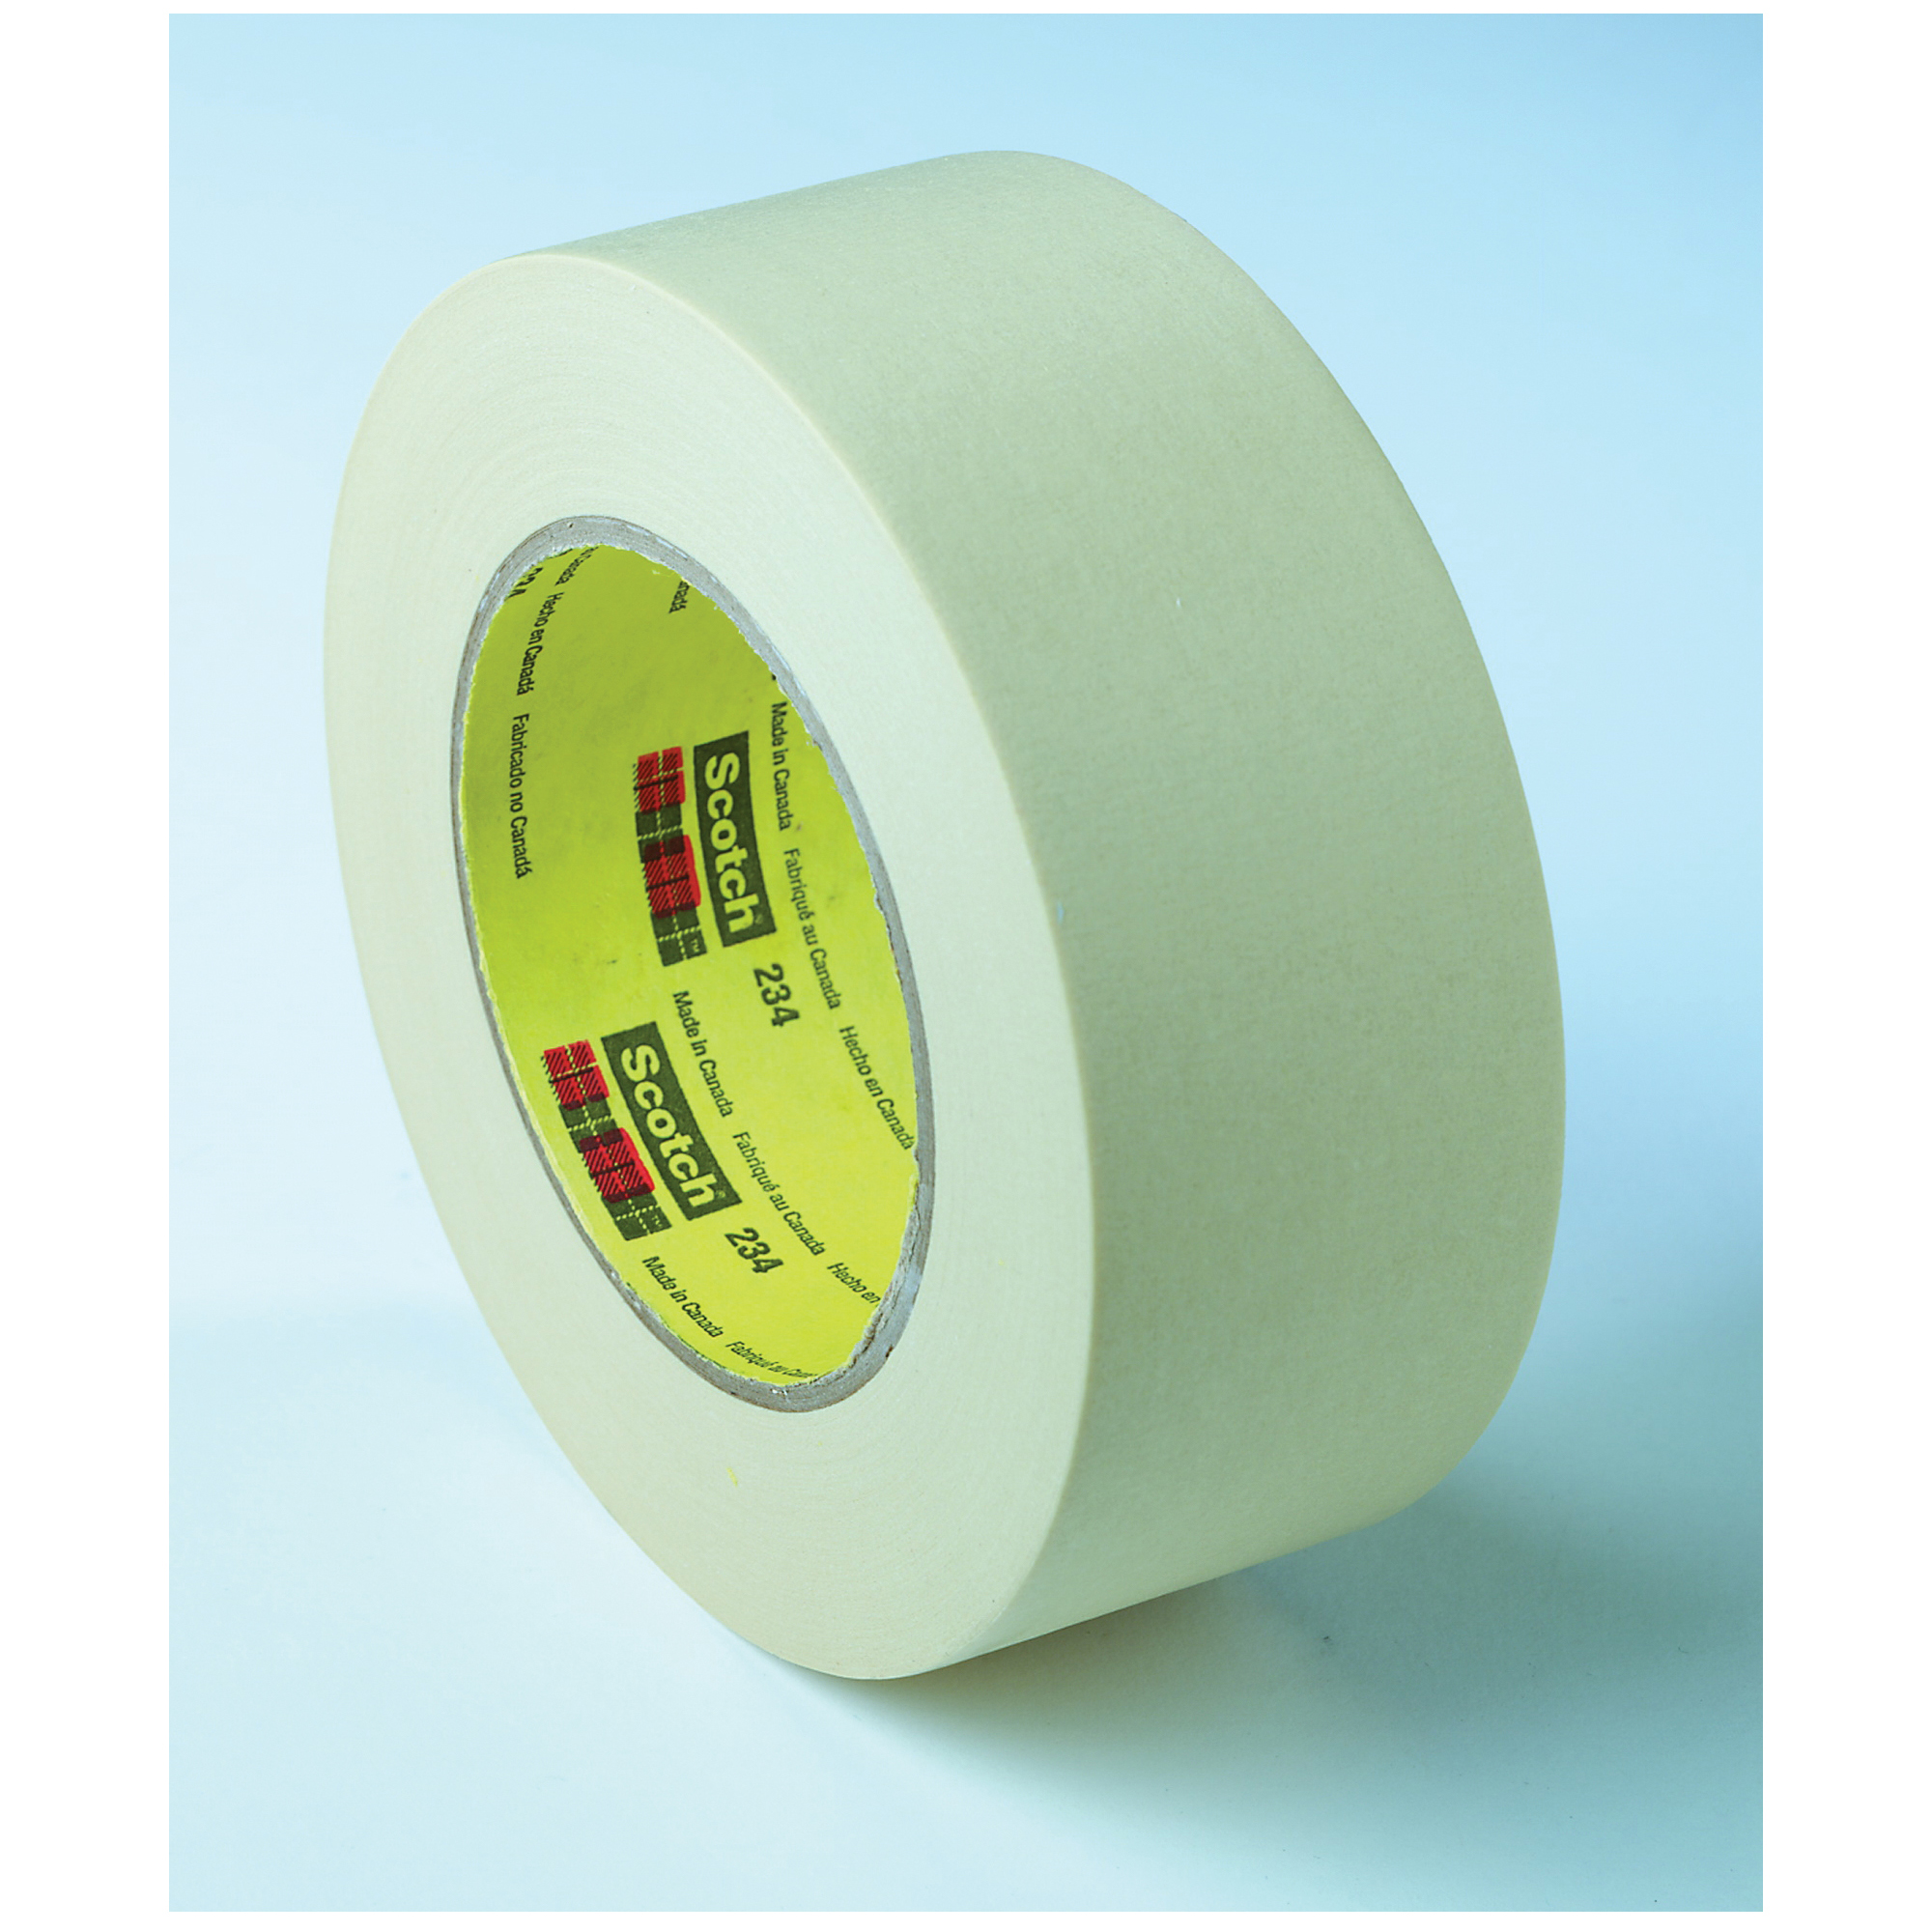 3M™ 021200-03771 483 Chemical-Resistant General Purpose UV-Resistant Masking Tape, 36 yd L x 1 in W, 5 mil THK, Rubber Adhesive, 3.9 mil Polyethylene Backing